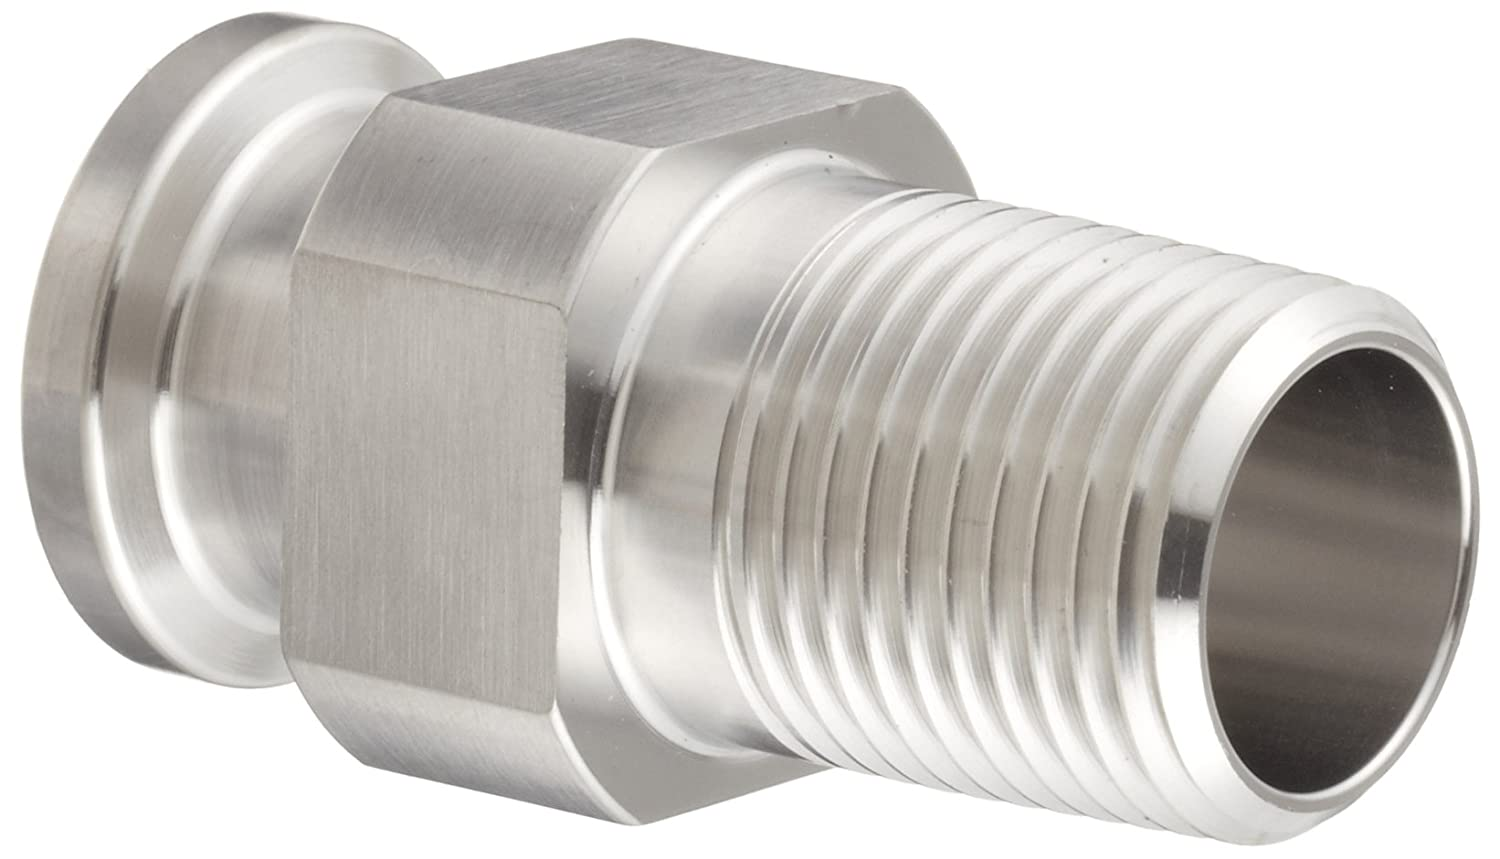 Dixon 21MP-R200 Stainless Steel 316L Sanitary Fitting, Clamp Adapter, 2' Tube OD x 2' NPT Male